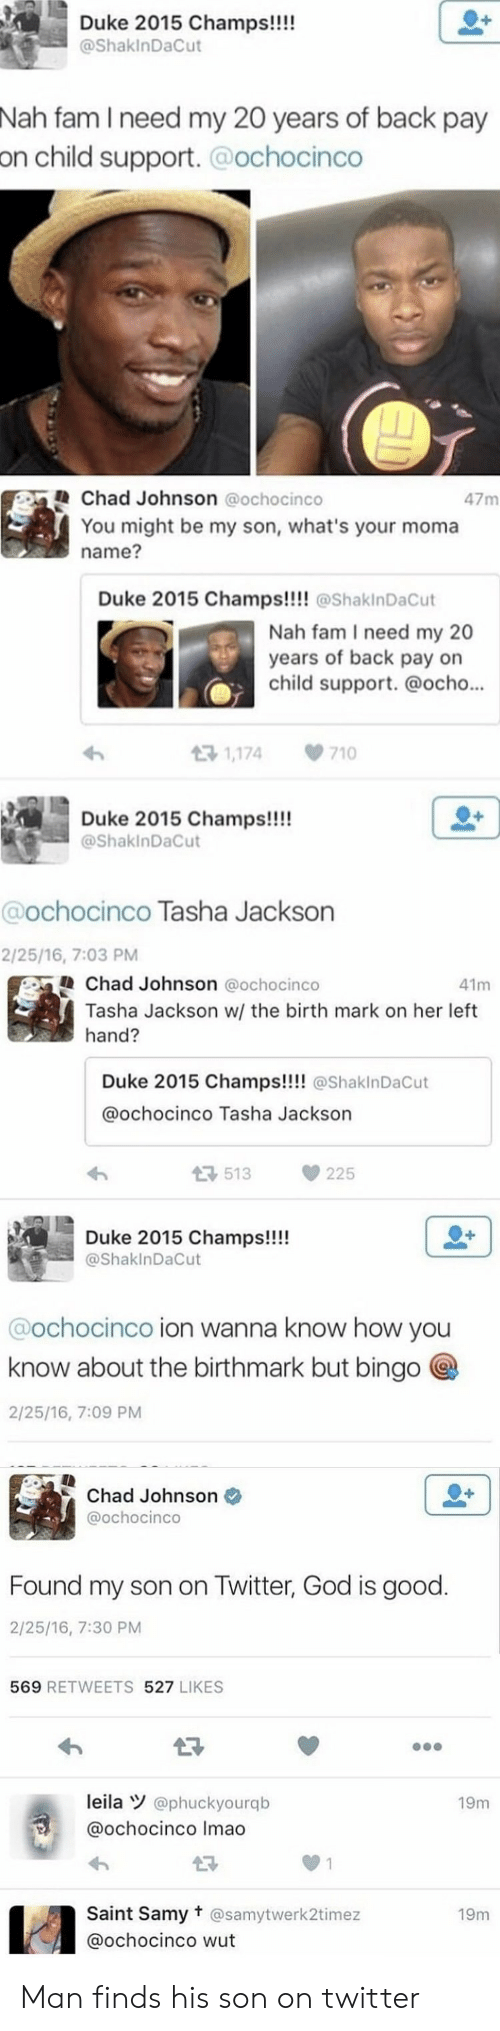 Ocho: Duke 2015 Champs!!!!  @ShakInDaCut  Nah fam I need my 20 years of back pay  on  child support.@ochocinco   Chad Johnson @ochocinco  47m  You might be my son, what's your moma  name?  Duke 2015 Champs!!!@ShakinDaCut  Nah fam I need my 20  years of back pay on  child support. @ocho..  1,174  710  Duke 2015 Champs!!!  @ShakinDaCut  @ochocinco Tasha Jackson  2/25/16, 7:03 PM   Chad Johnson @ochocinco  41m  Tasha Jackson w/ the birth mark on her left  hand?  Duke 2015 Champs!!!! @ShaklnDaCut  @ochocinco Tasha Jackson  3513225  Duke 2015 Champs!!!  @ShaklnDaCut  @ochocinco ion wanna know how you  know about the birthmark but bingo  2/25/16, 7:09 PM   Chad Johnson  @ochocinco  Found my son on Twitter, God is good.  2/25/16, 7:30 PM  569 RETWEETS 527 LIKES  leila @phuckyourqb  @ochocinco Imao  19m  27  0 1  Saint Samy t @samytwerk2timez  @ochocinco wut  19m   Man finds his son on twitter